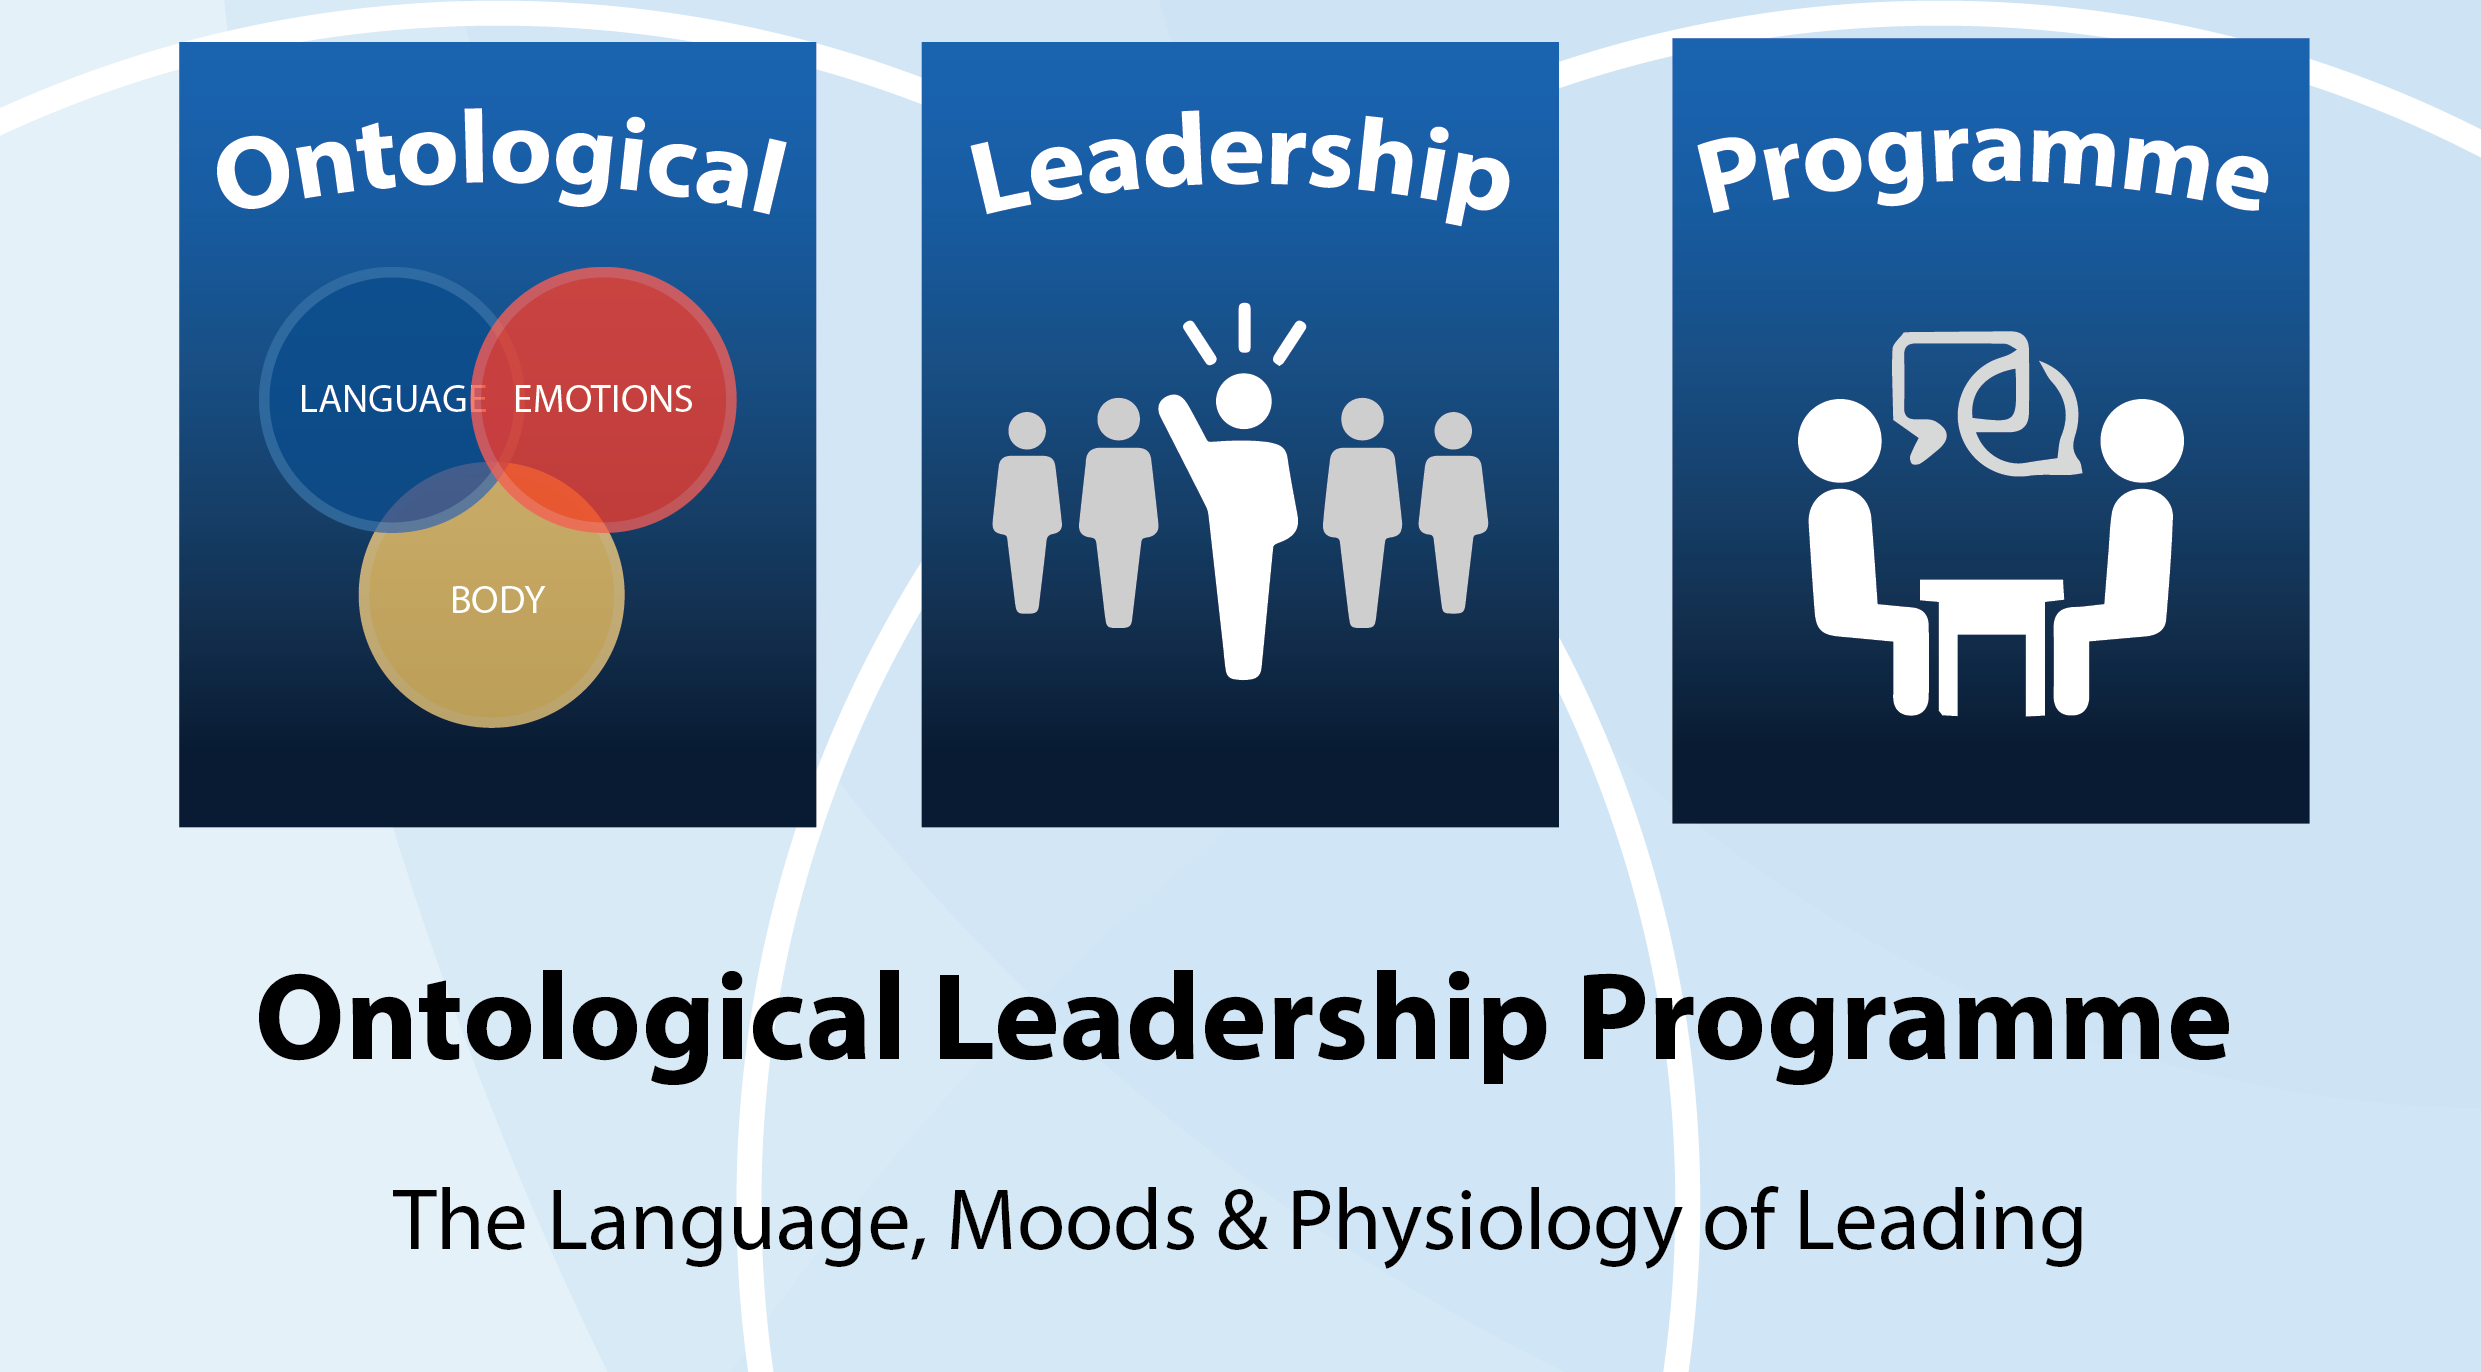 ontological leadership program